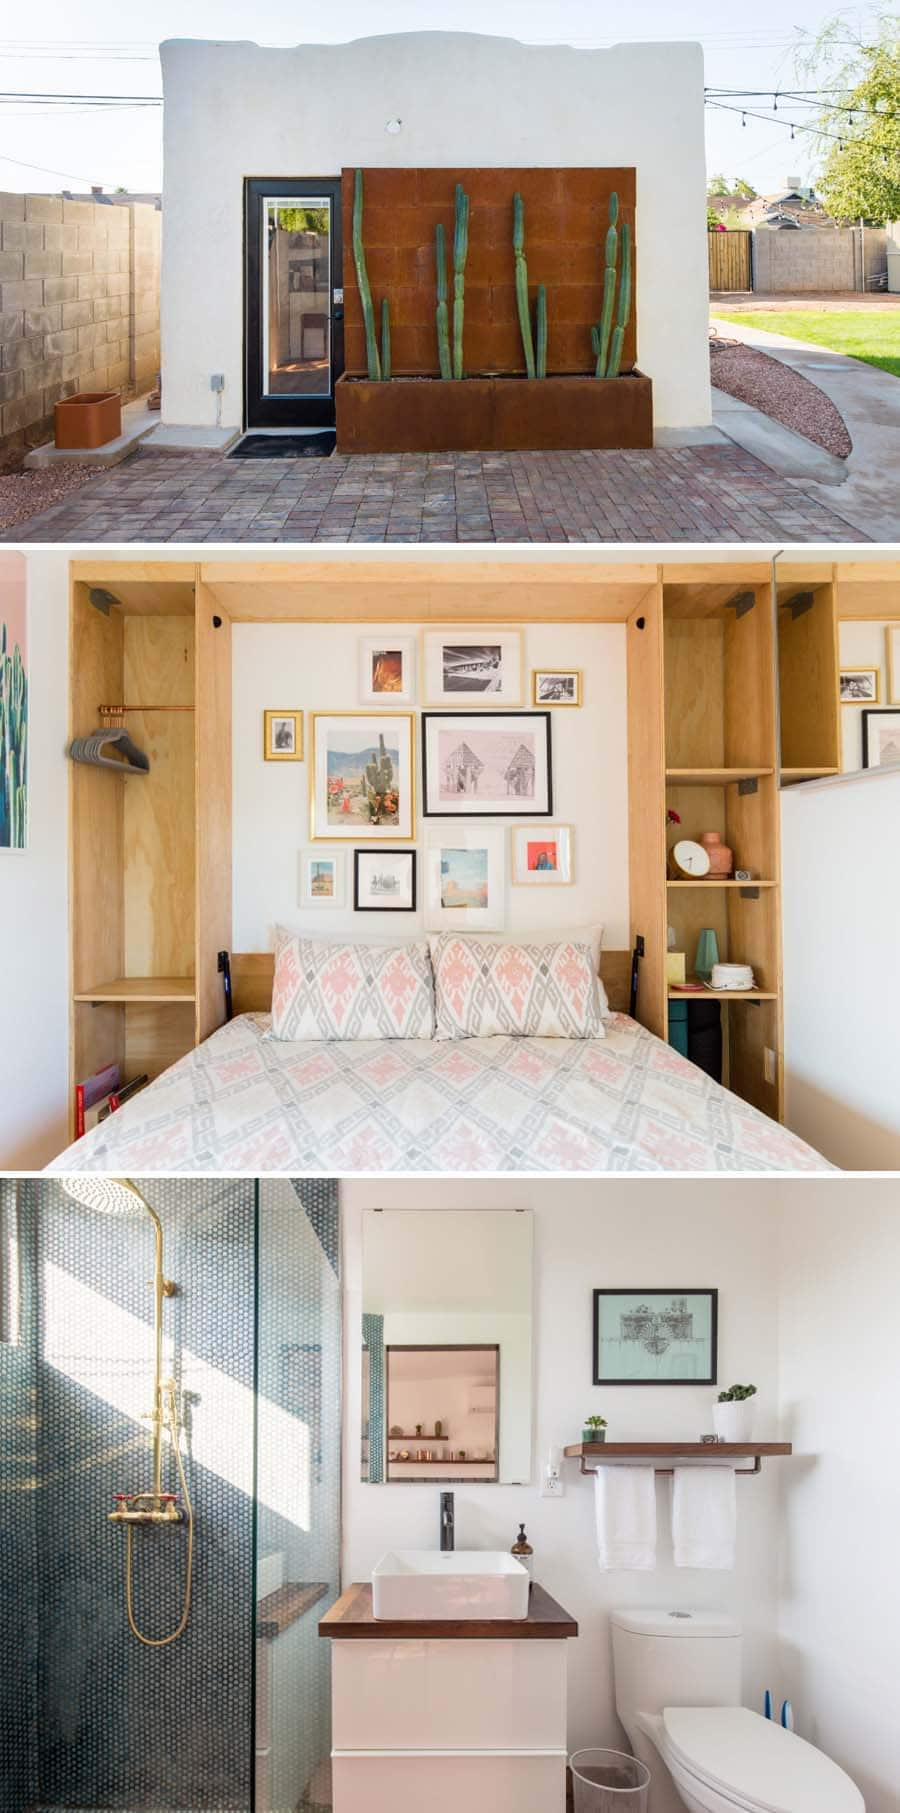 Stylish casita Airbnb in downtown Phoenix, Arizona